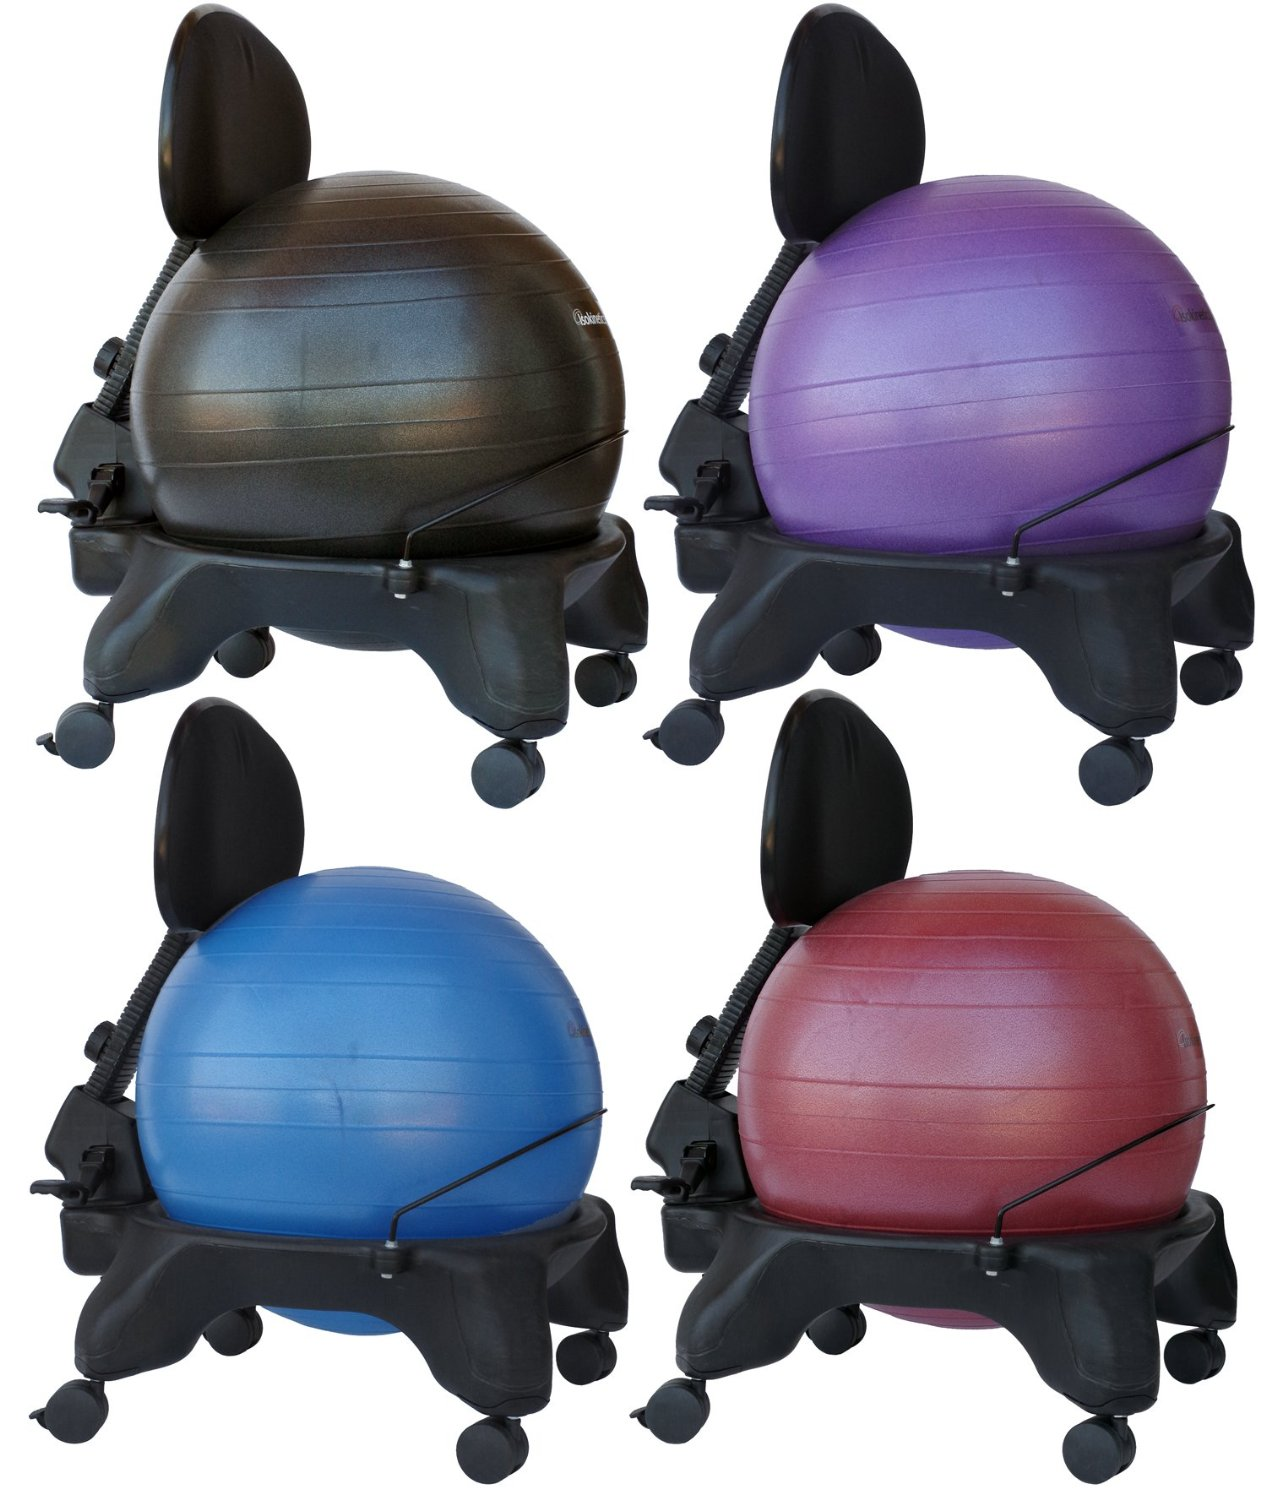 exercise ball office chair size pier one rocking buy isokinetics inc adjustable back standard or exclusive